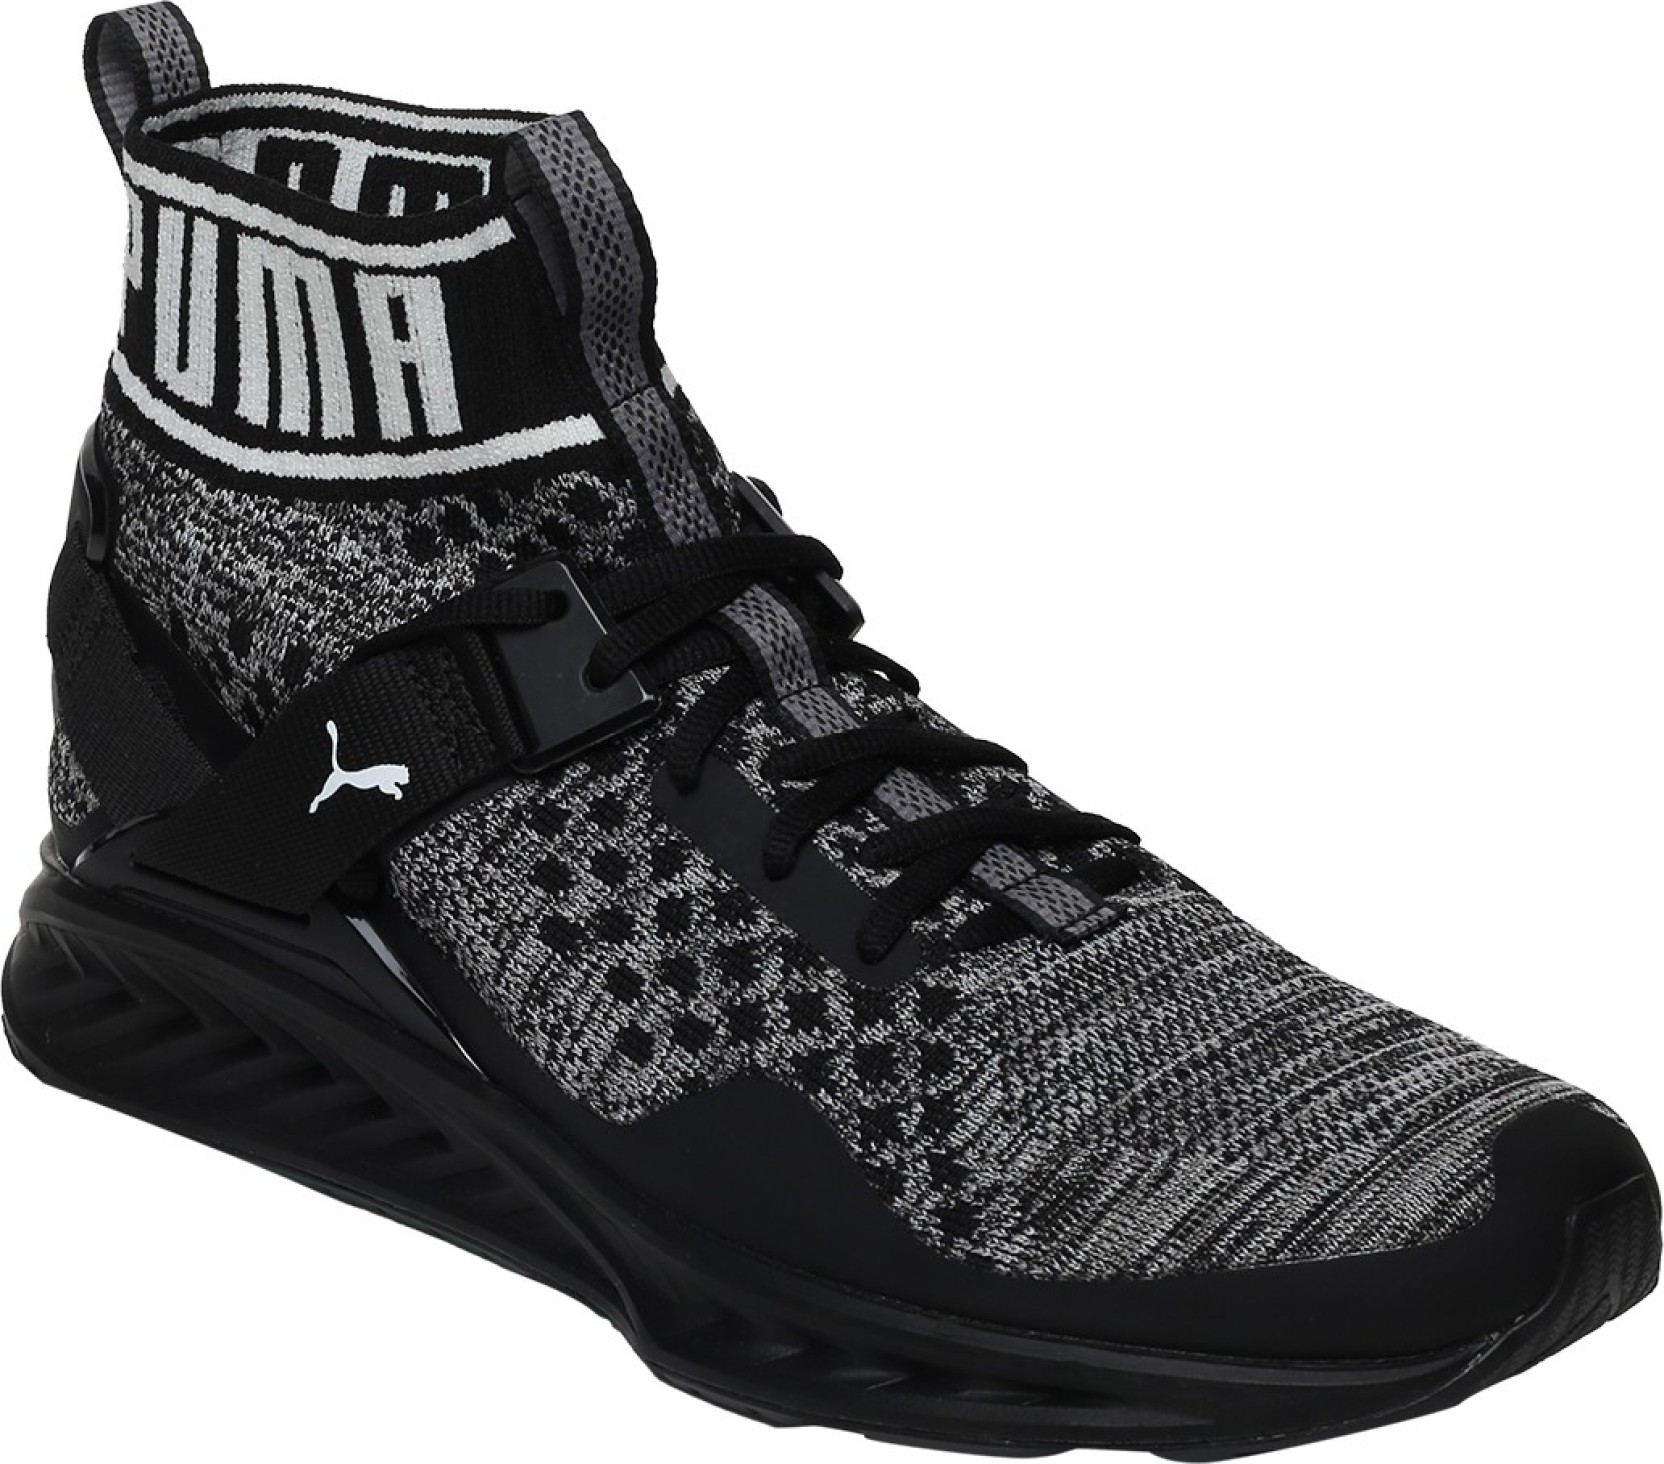 new style 2655f 82ec3 ... good puma ignite evoknit wrestling shoes for men. home 4329c ce422